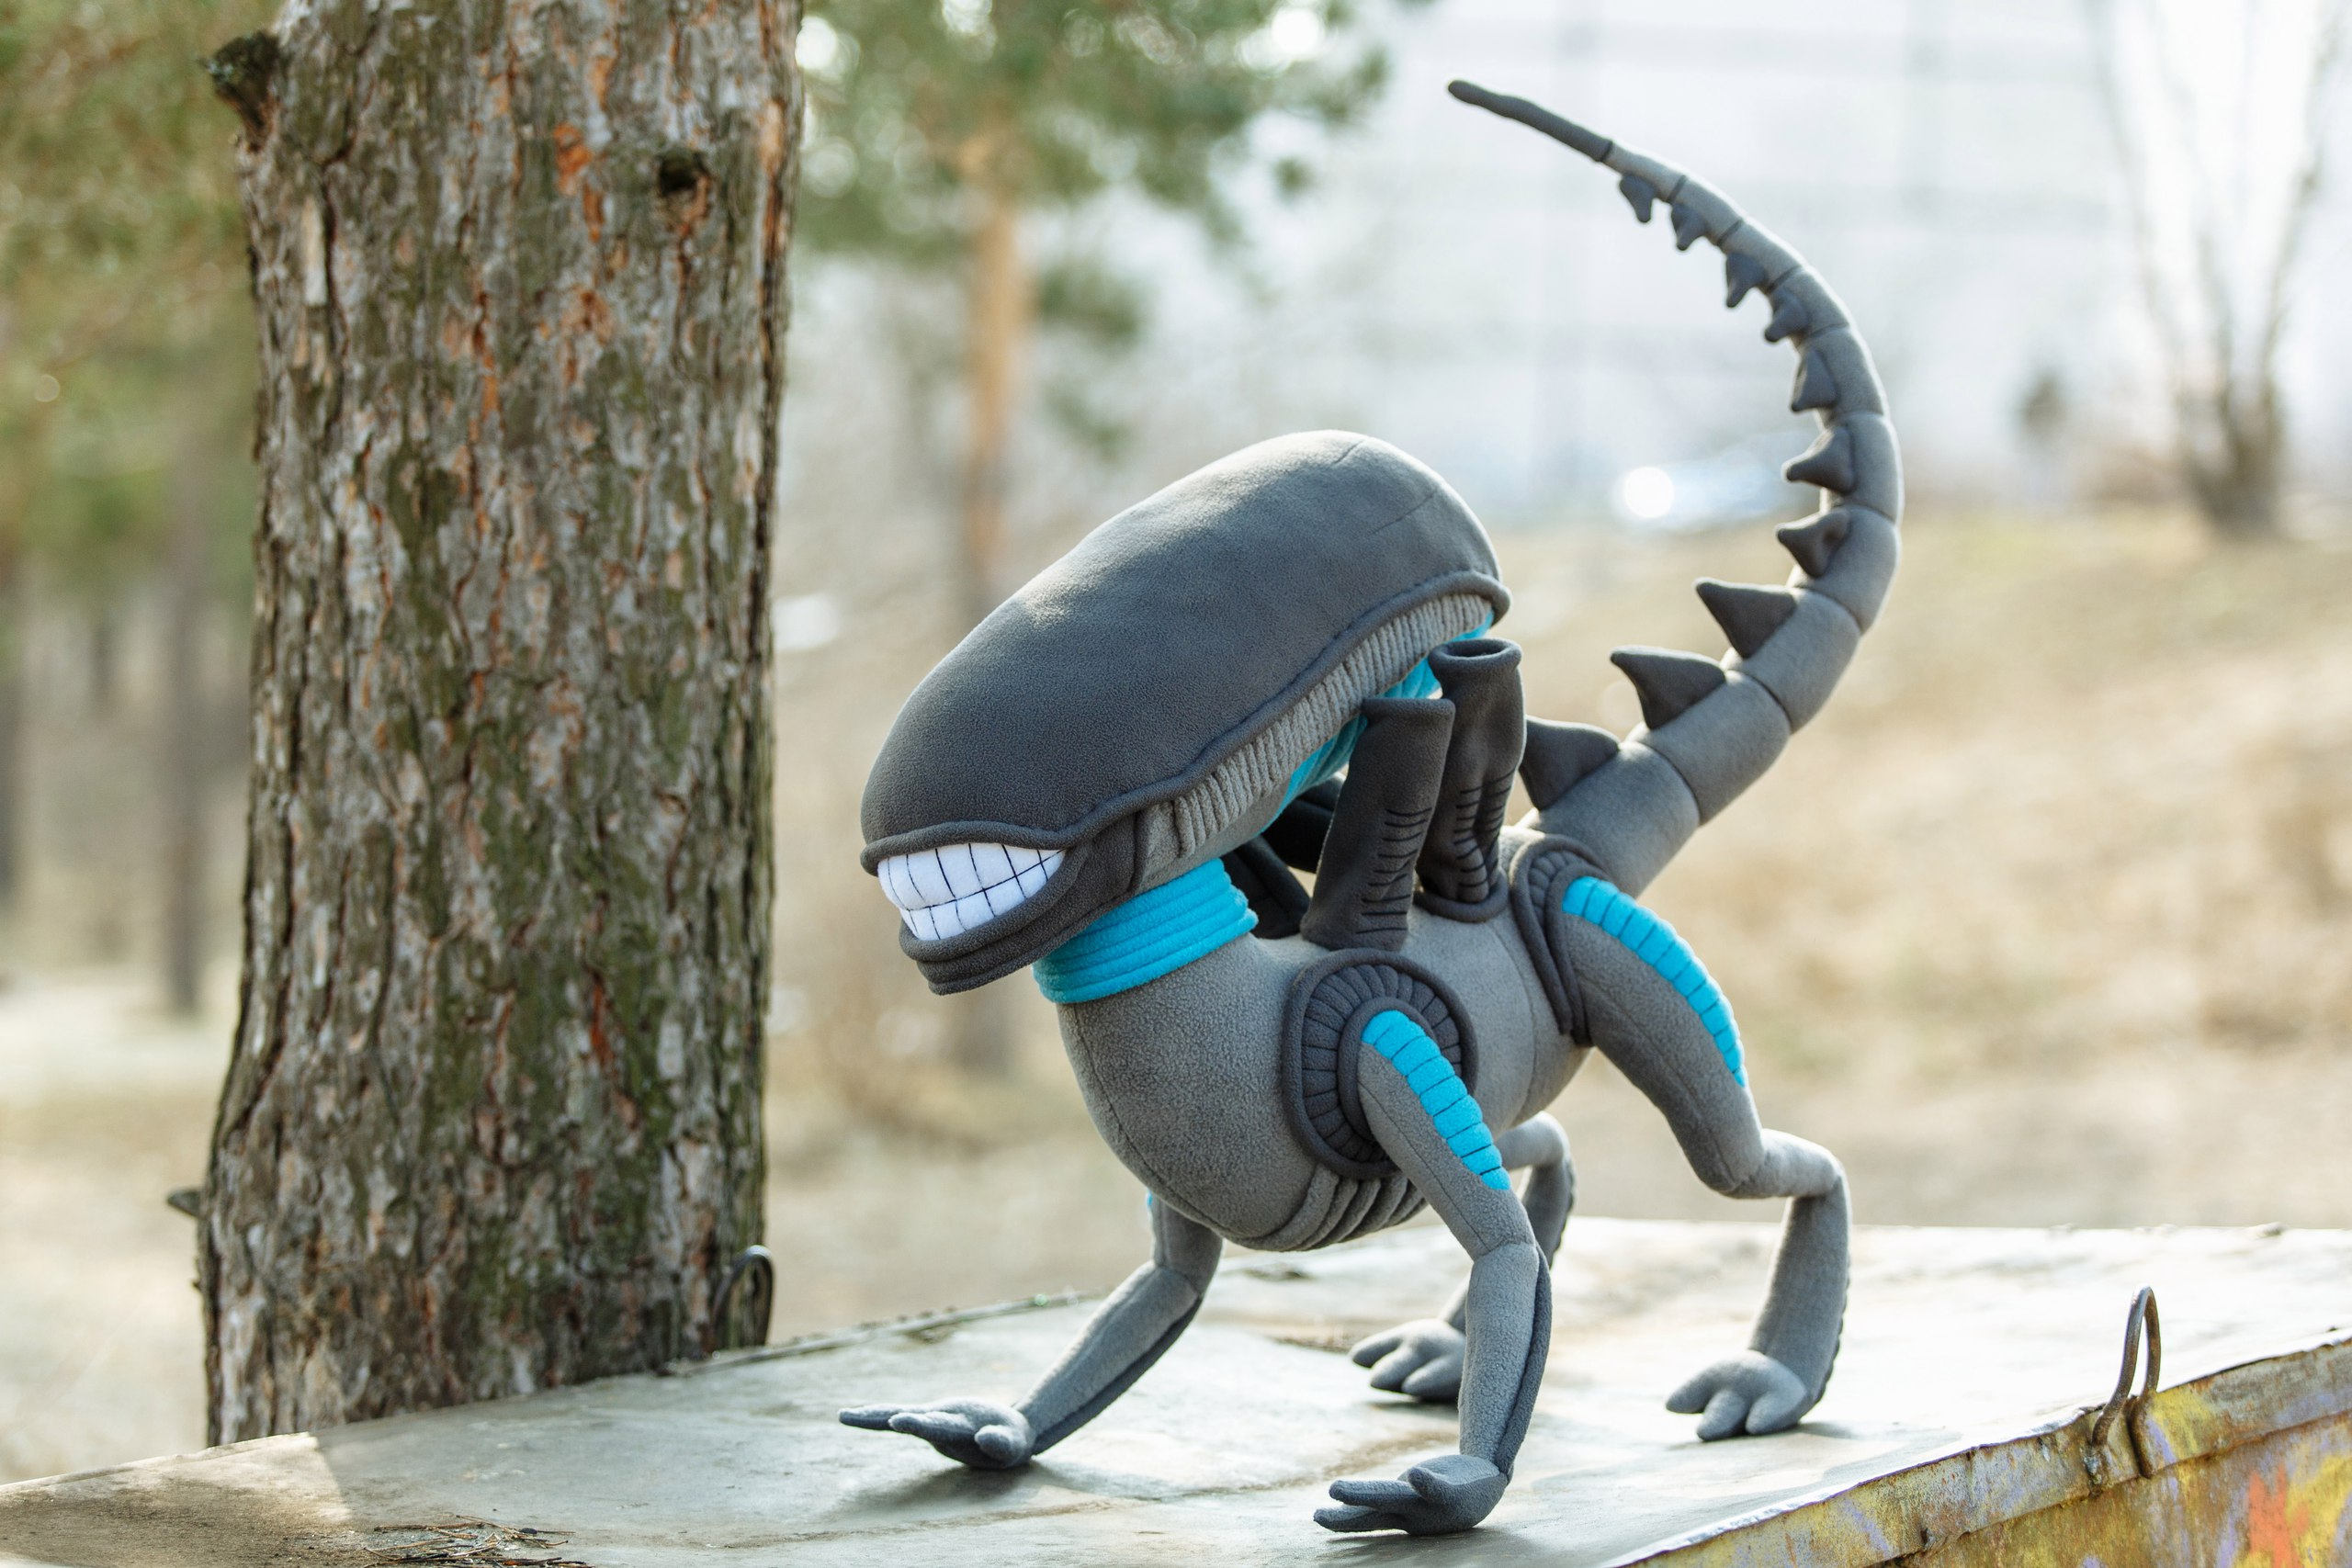 Alien Xenomorph Plush Is the Most Adorable Xenomorph